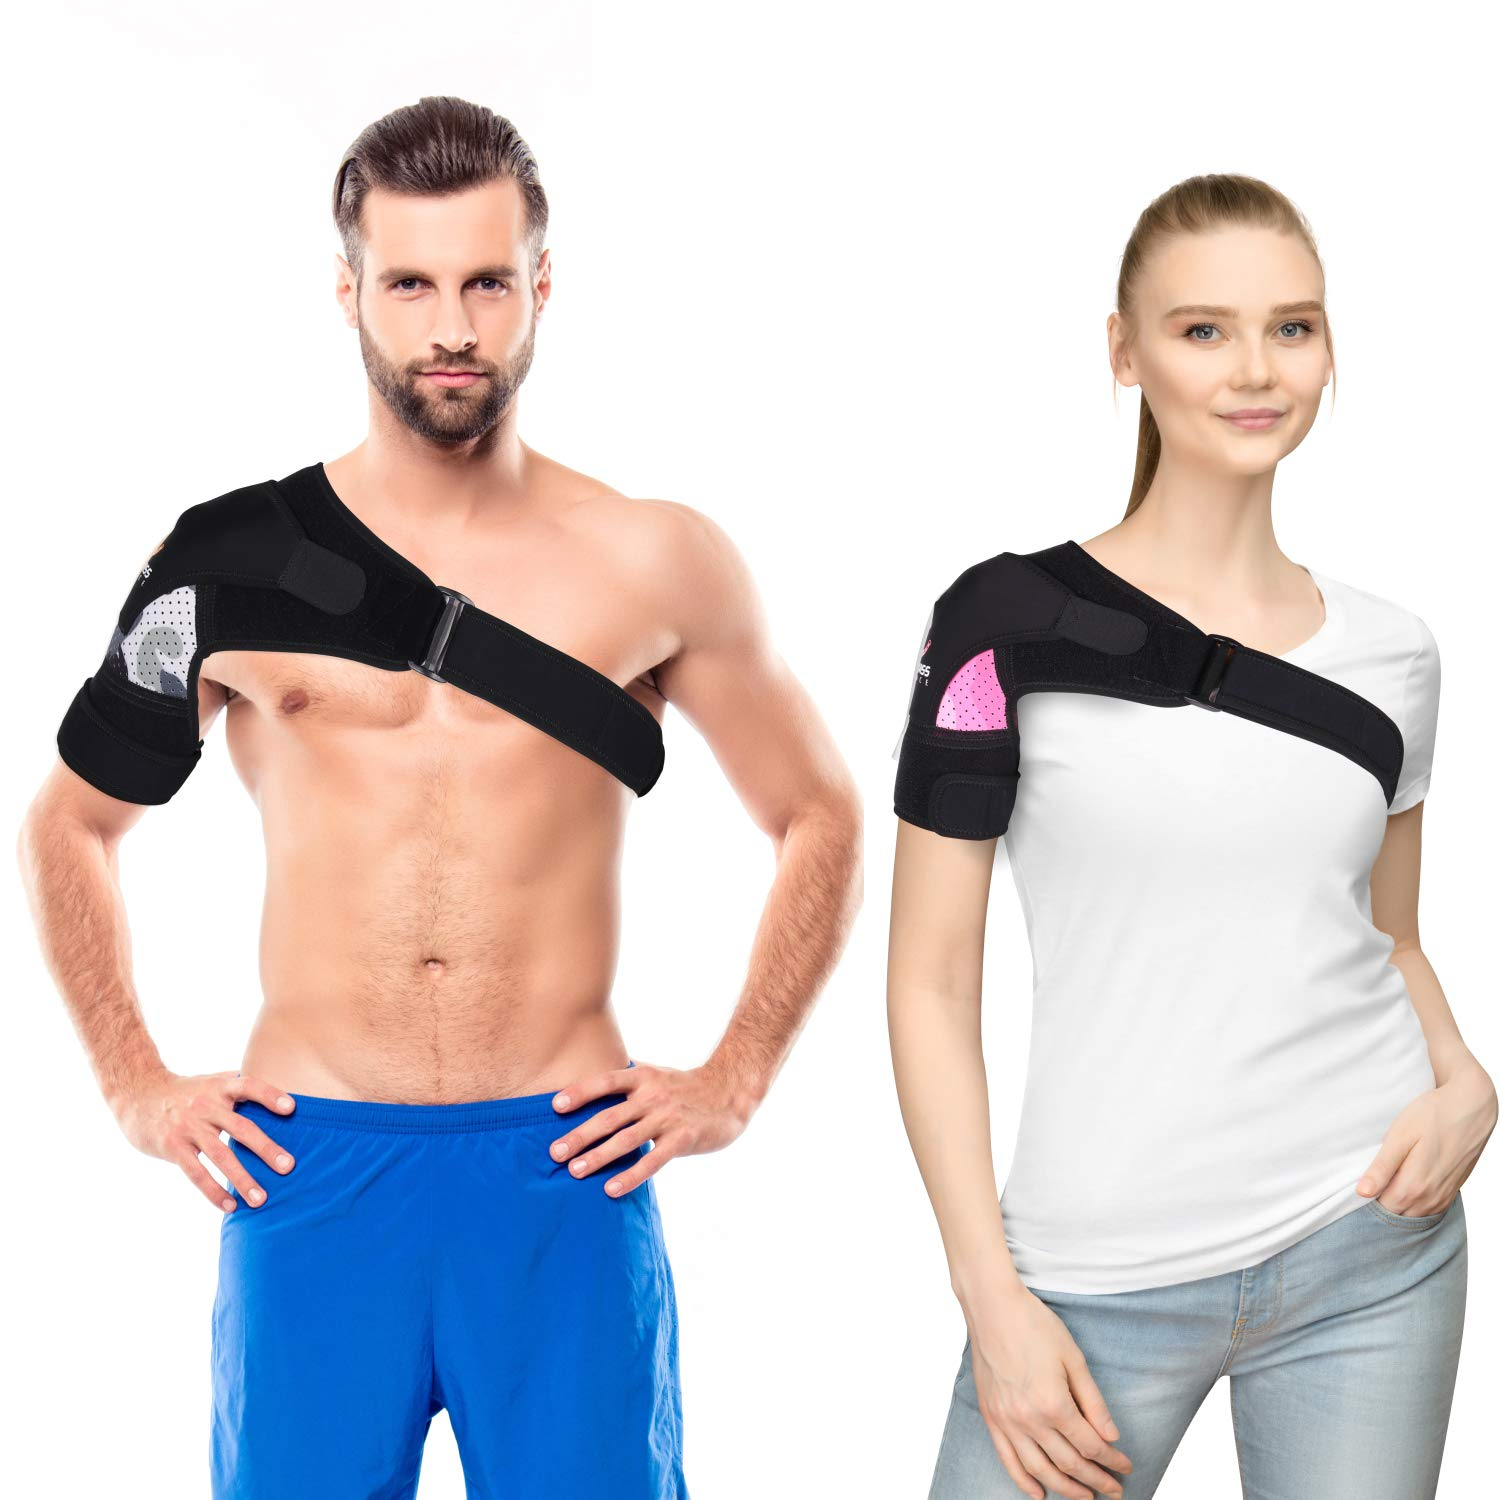 Shoulder Brace with Compression Pad for Men, Women, Right, Left,Adjustable Breathable Neoprene Shoulder Support for Rotator Cuff, Dislocated AC Joint, Bursitis by Cleviss (Pink, L-XL)